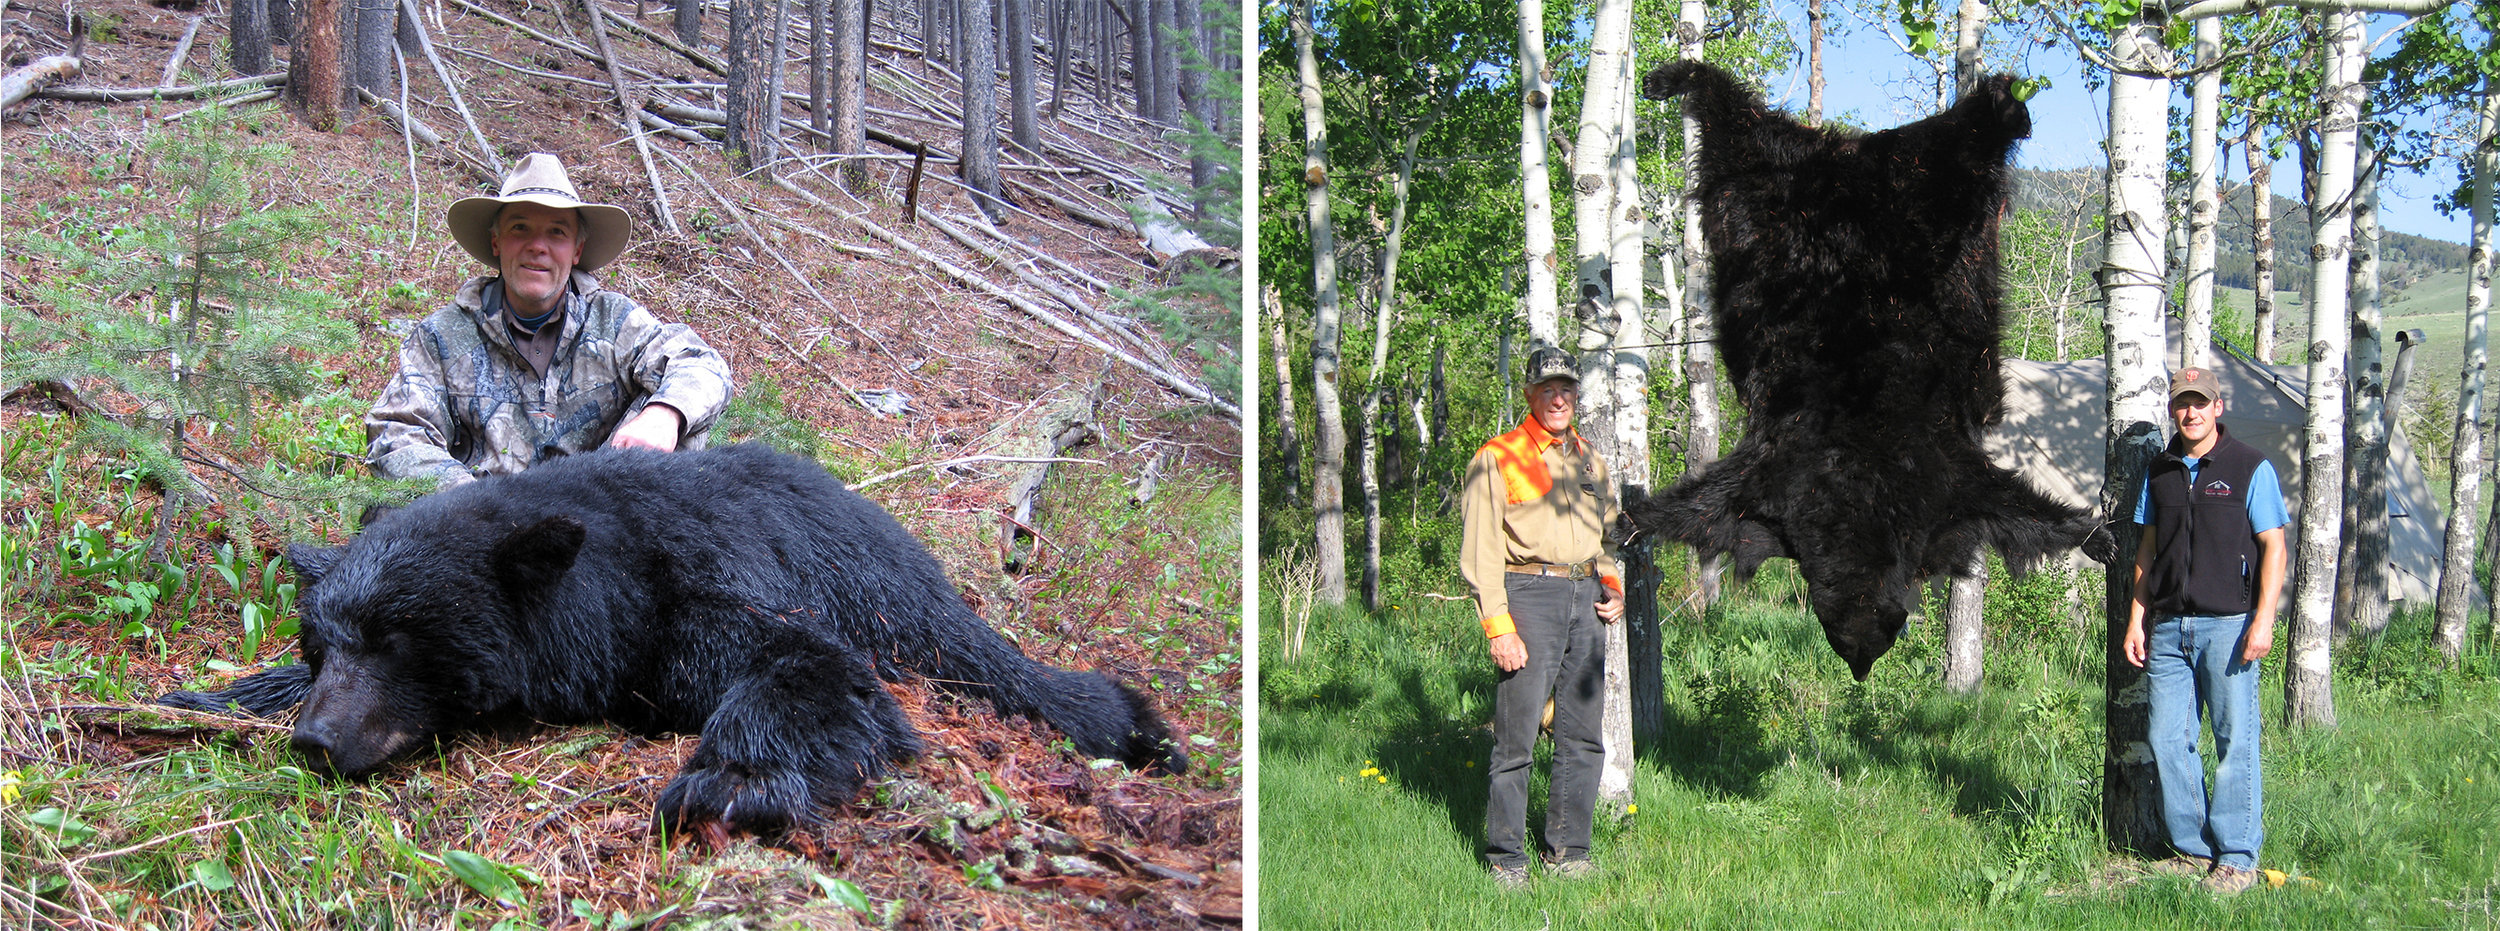 LEFT:  My hunting partner, Bill Wilson of Missoula, MT, took this exceptional black bear while hunting with me in the spring of 2011.  RIGHT:  Mark Edgell, of Missoula, MT, took this exceptional bear near an elk calving area in Central Montana. This was his first spring black bear and will be a lifetime memory for him and his family.